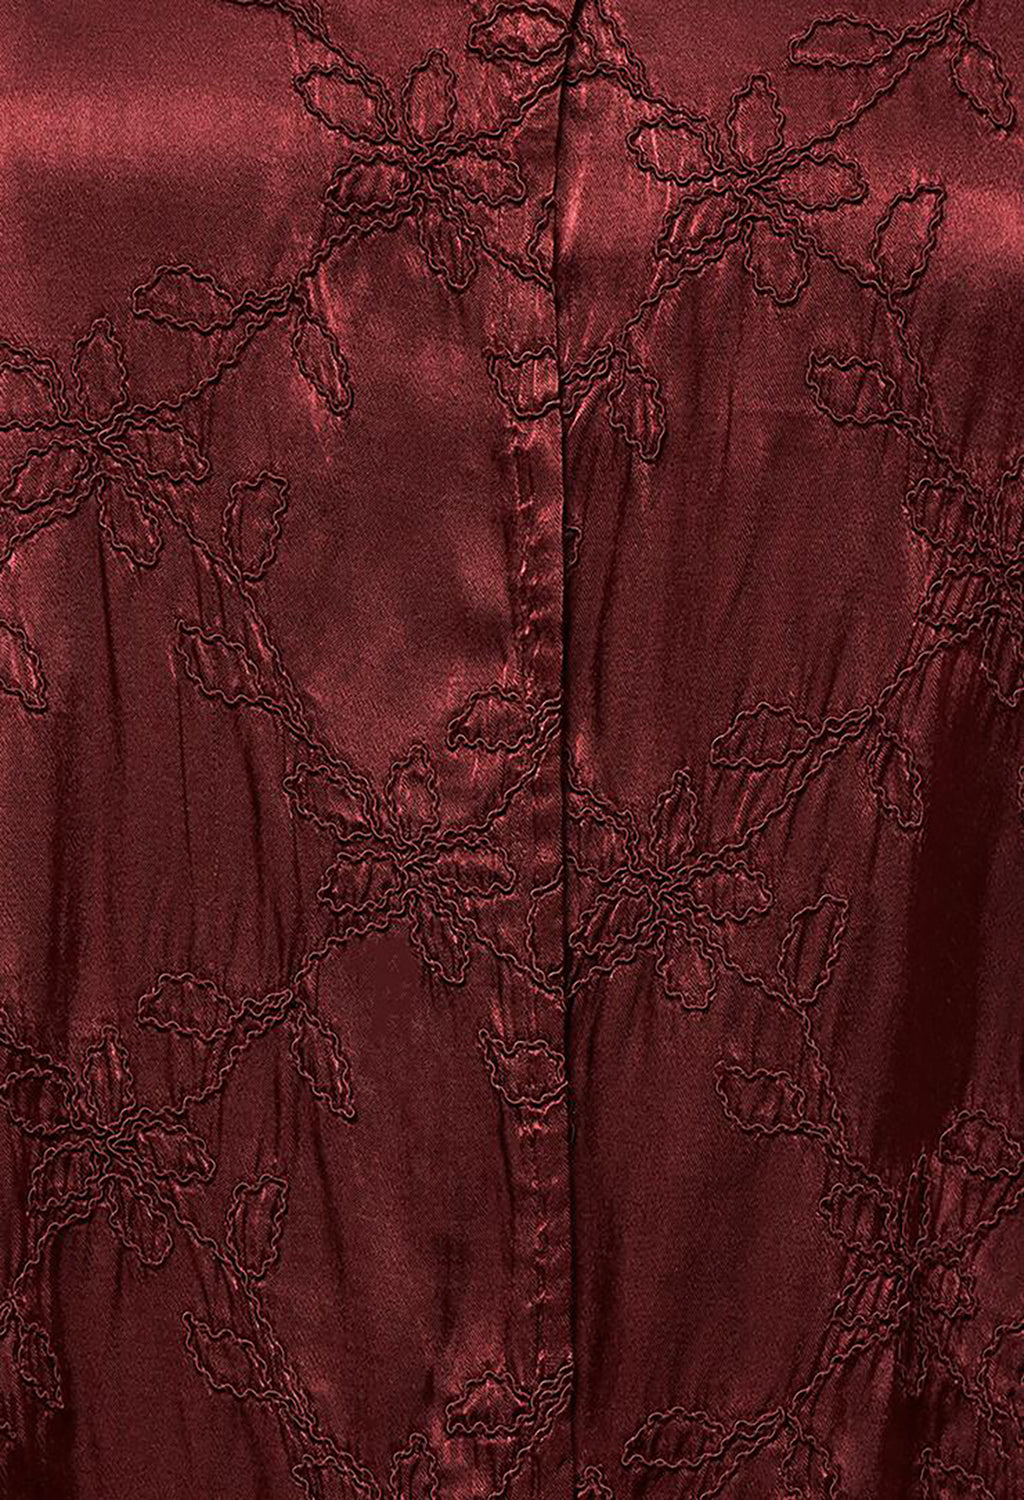 Satin Front Jacket with Embroidery in Burgundy